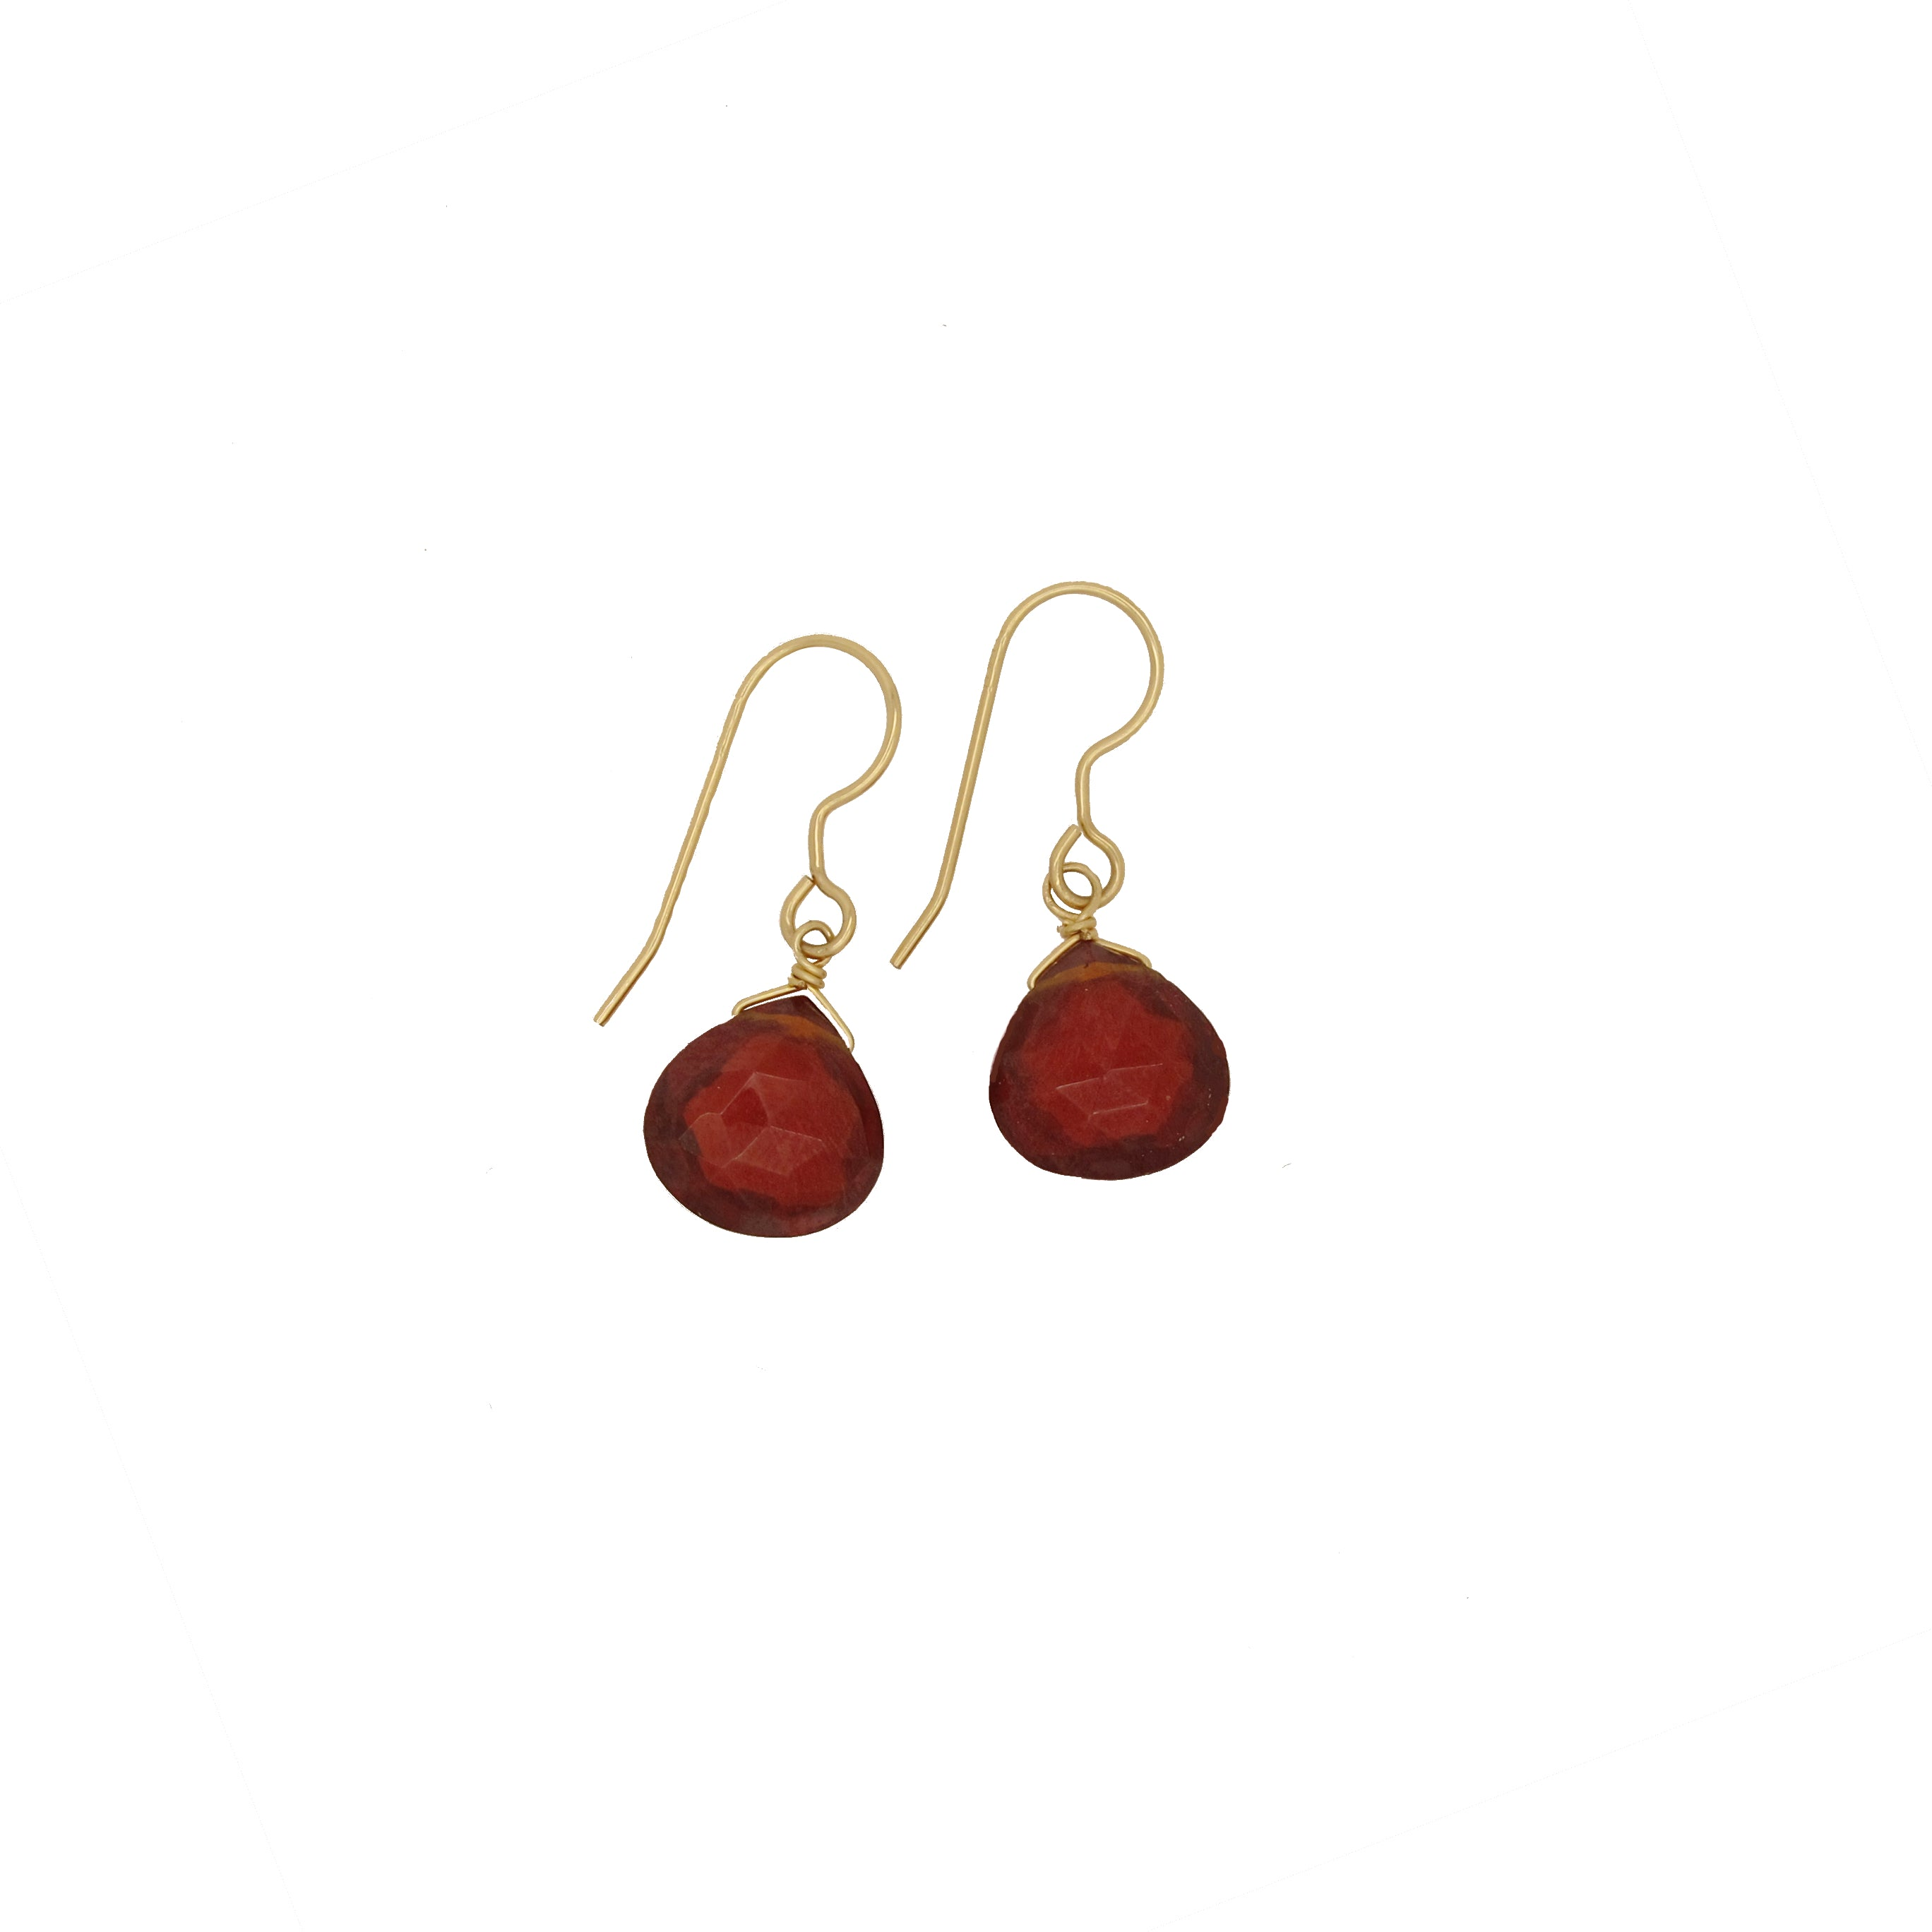 orange products img jewelry edited garnet jewellery shaped pear williams custom earrings